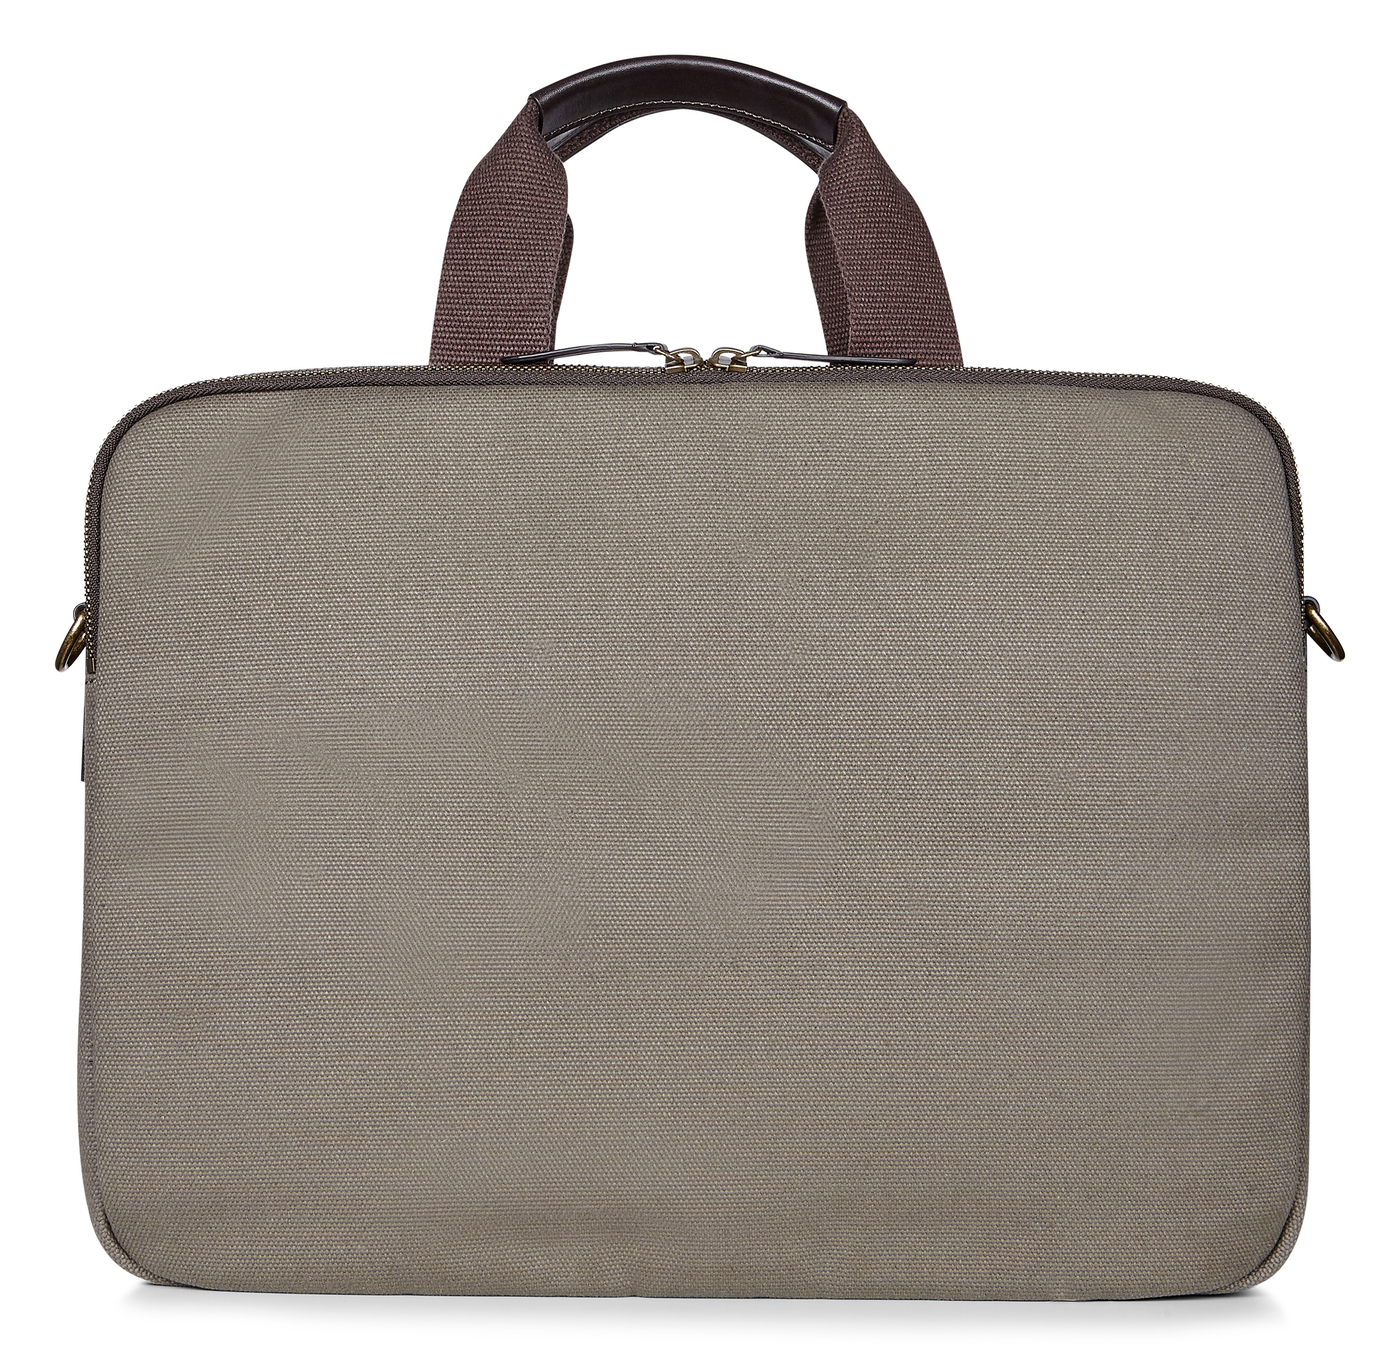 ECCO Eday 3.0 Laptop Bag